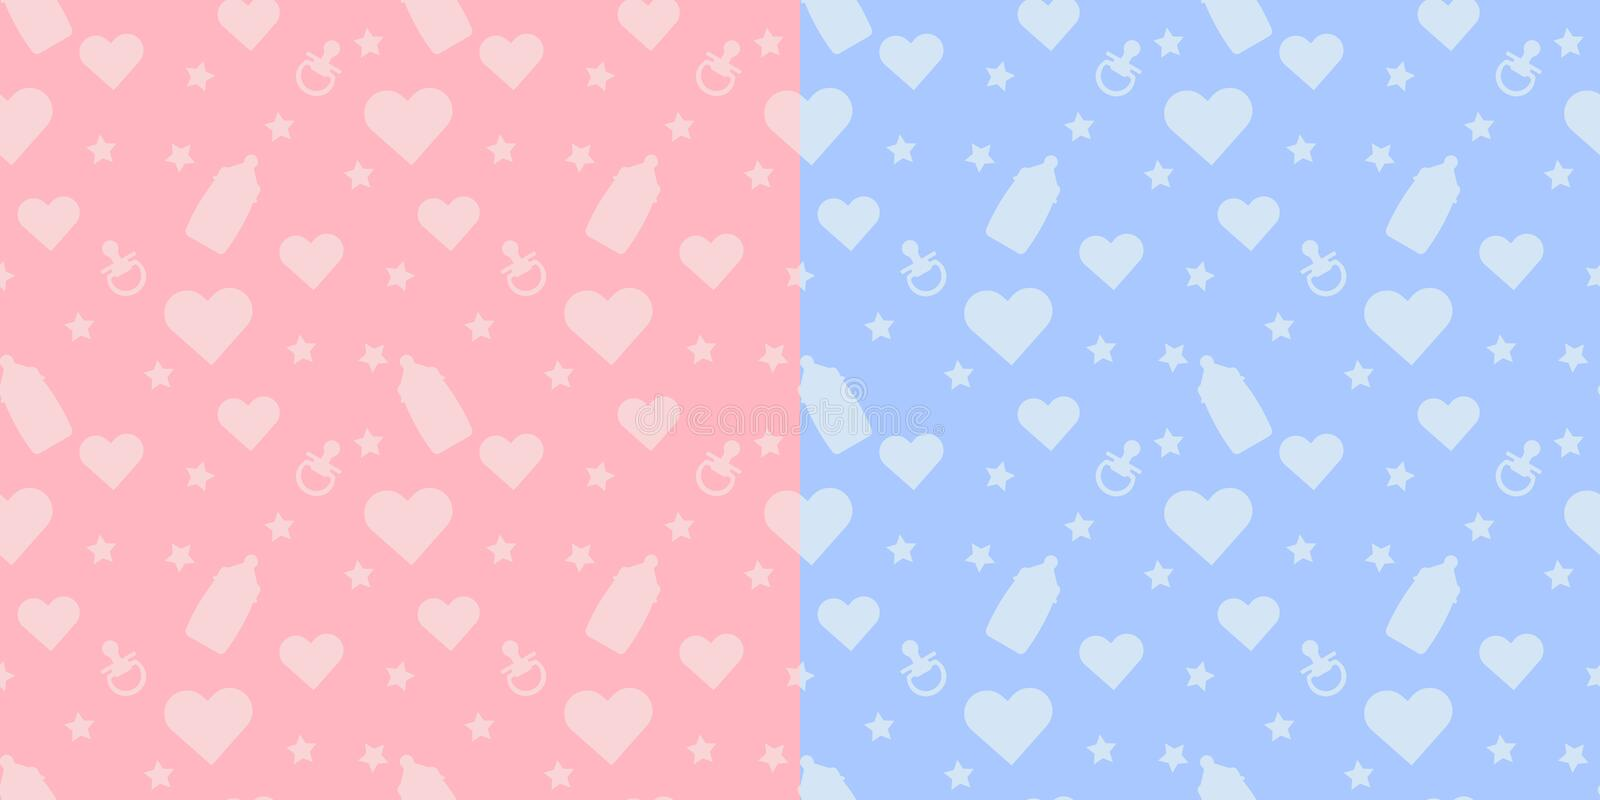 Set kids cute  seamless pattern with shapes of baby bottle, pacifier, heart on blue and pink background stock illustration